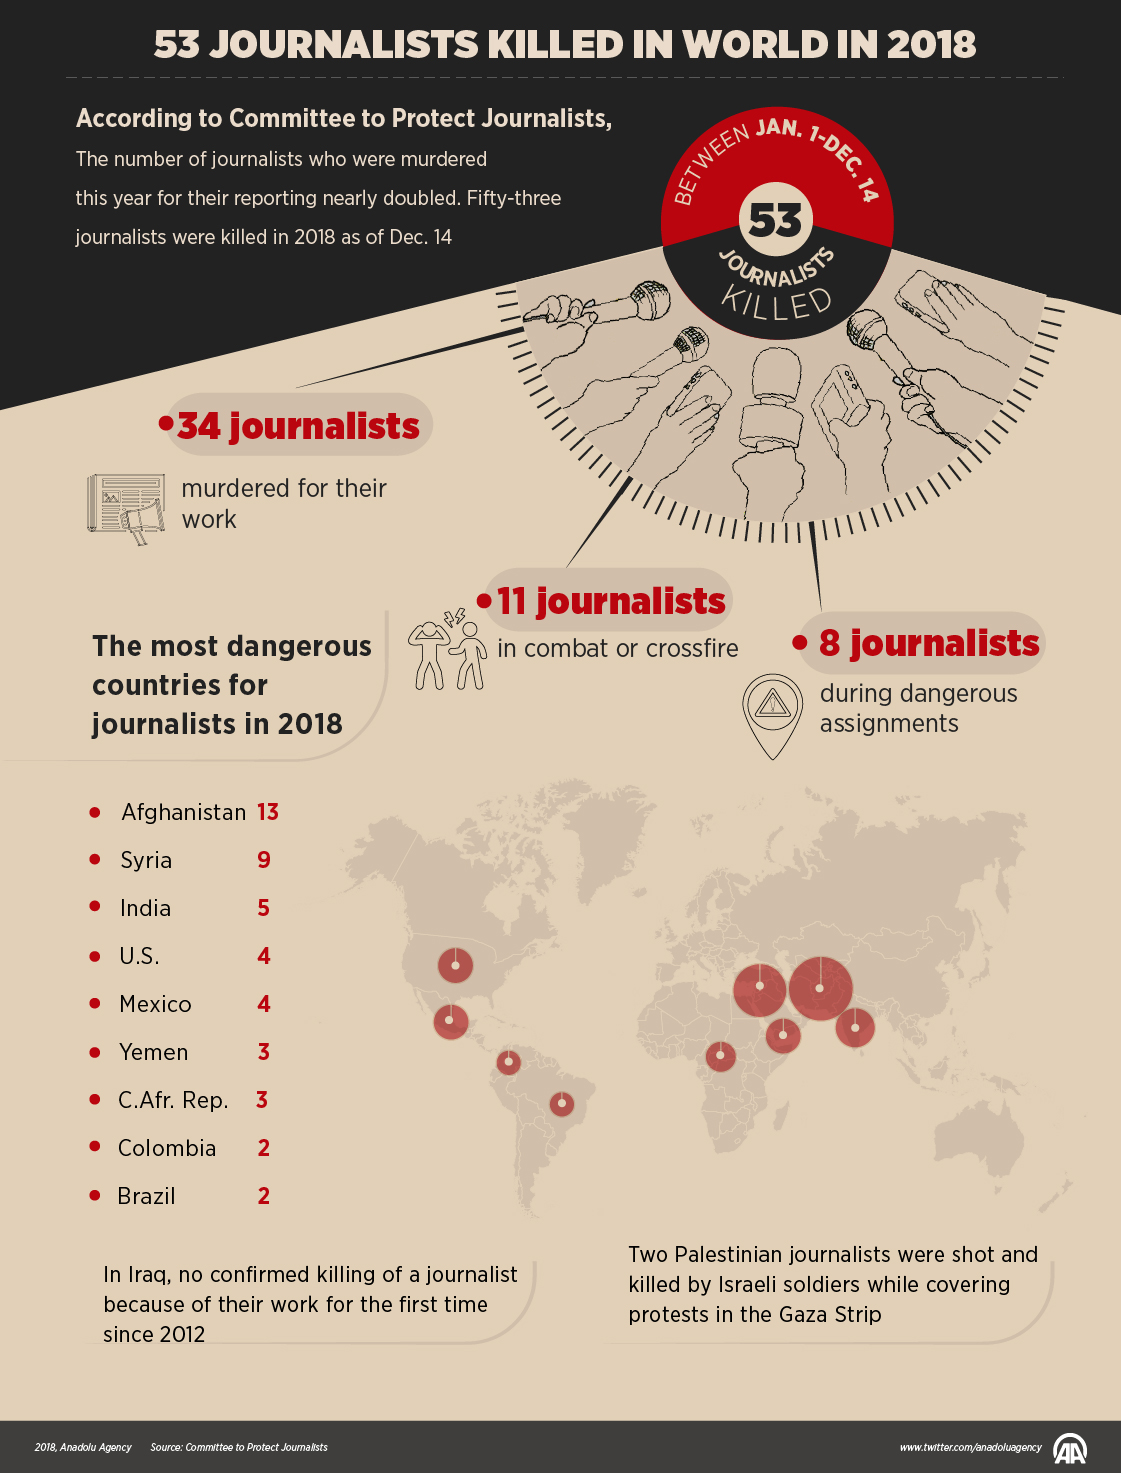 53 Journalists Killed in World in 2018